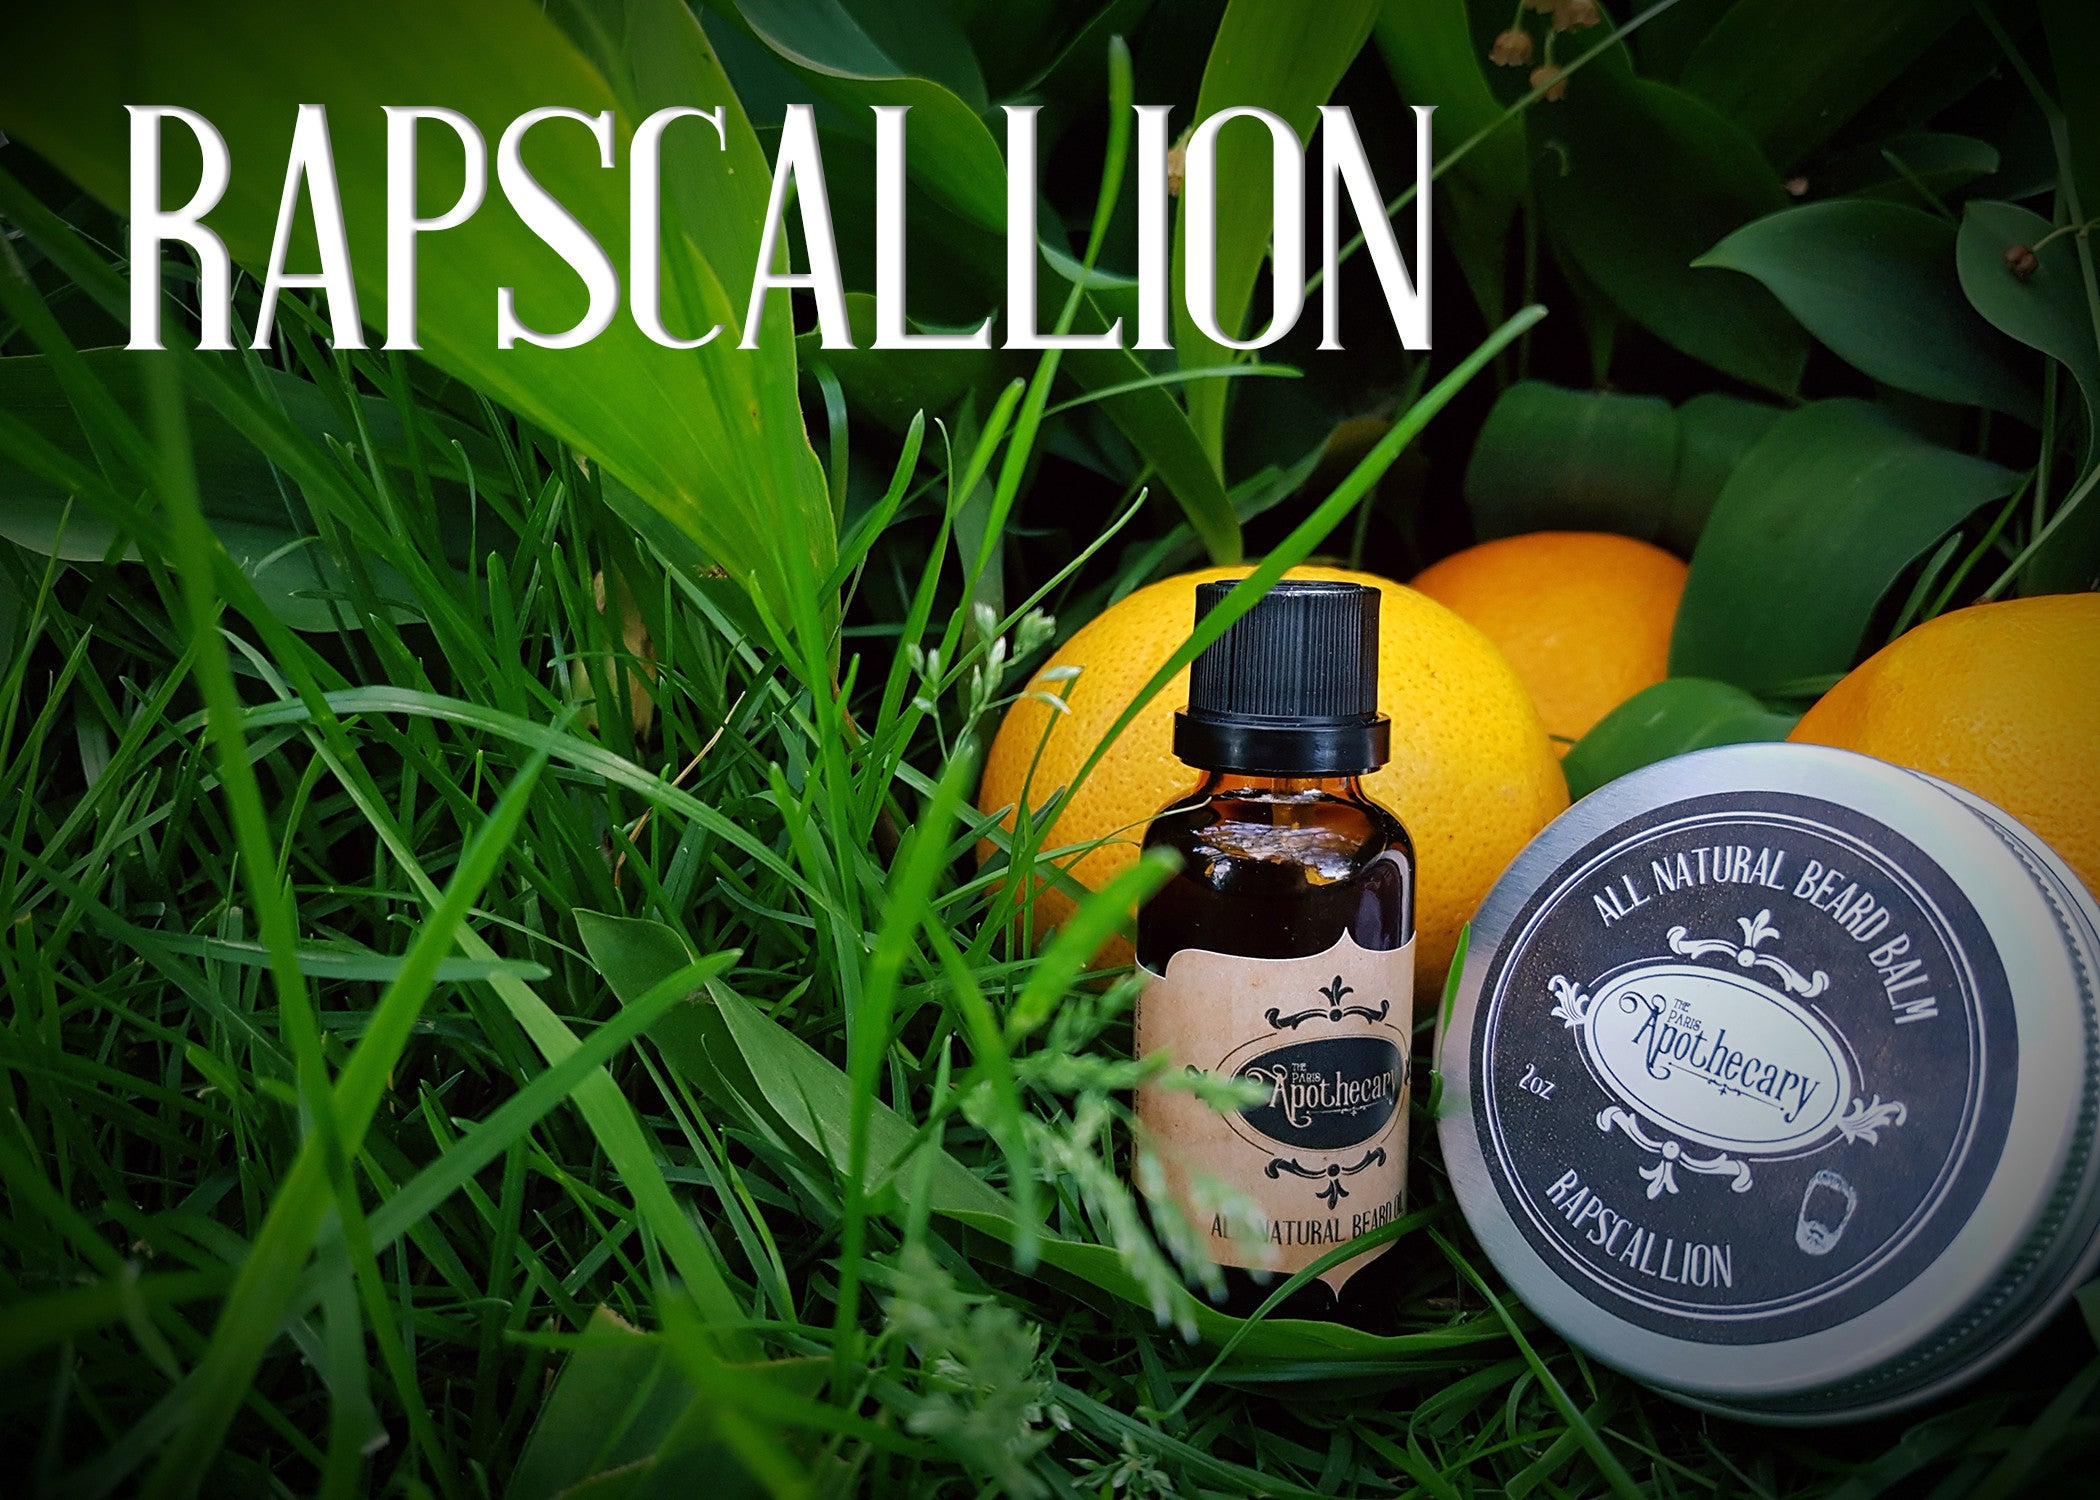 Rapscallion Beard Oil